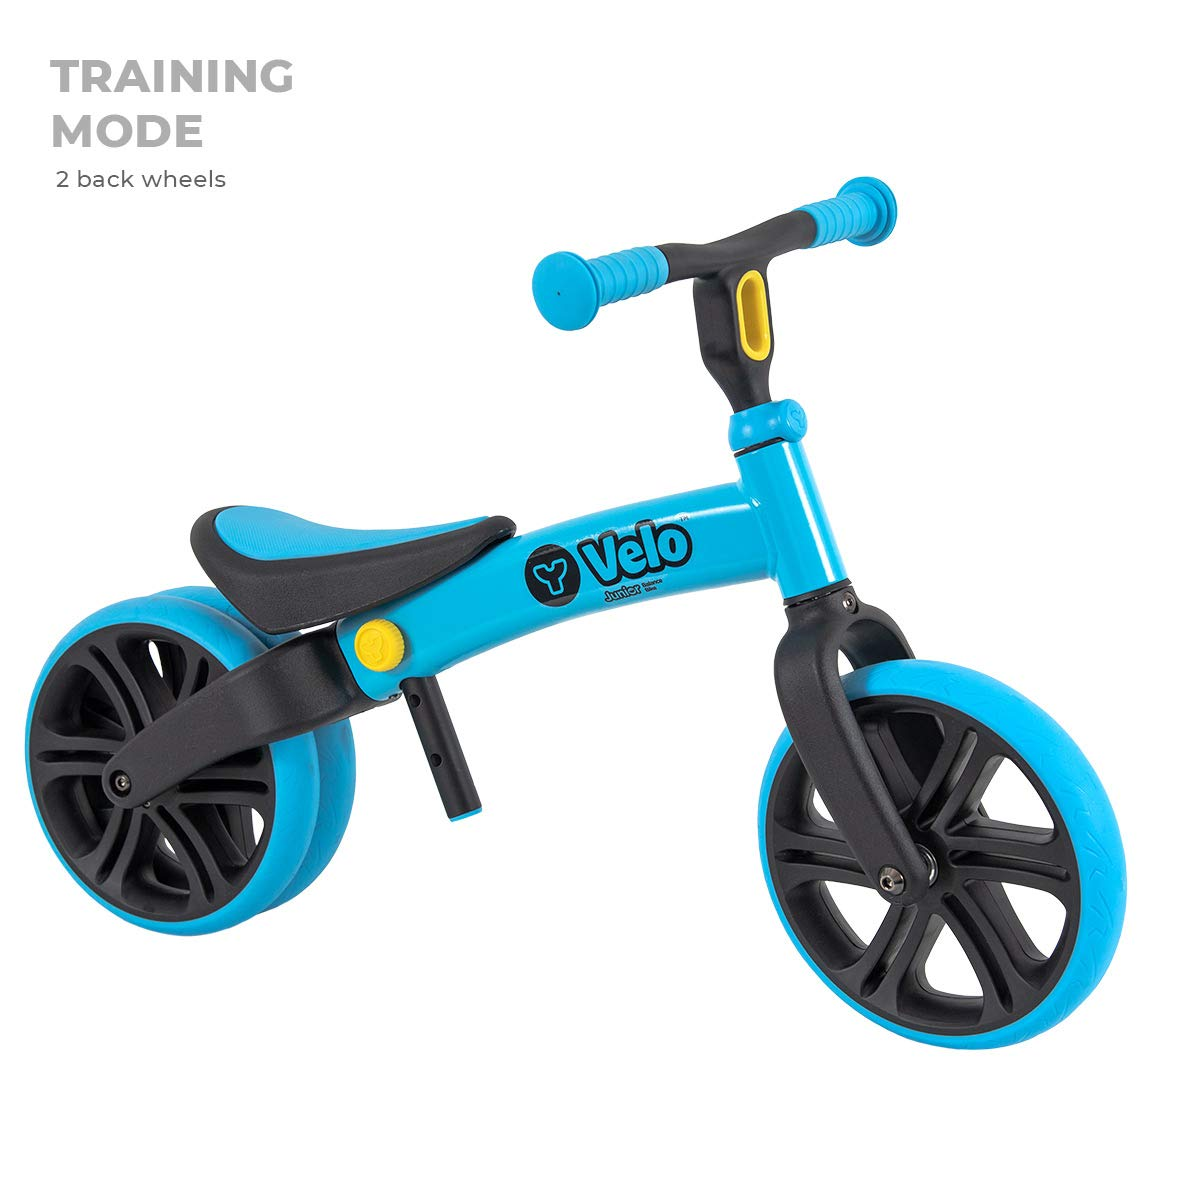 Yvolution Y Velo Junior Toddler Bike No-Pedal Balance Bike Ages 18 Months to 4 Years